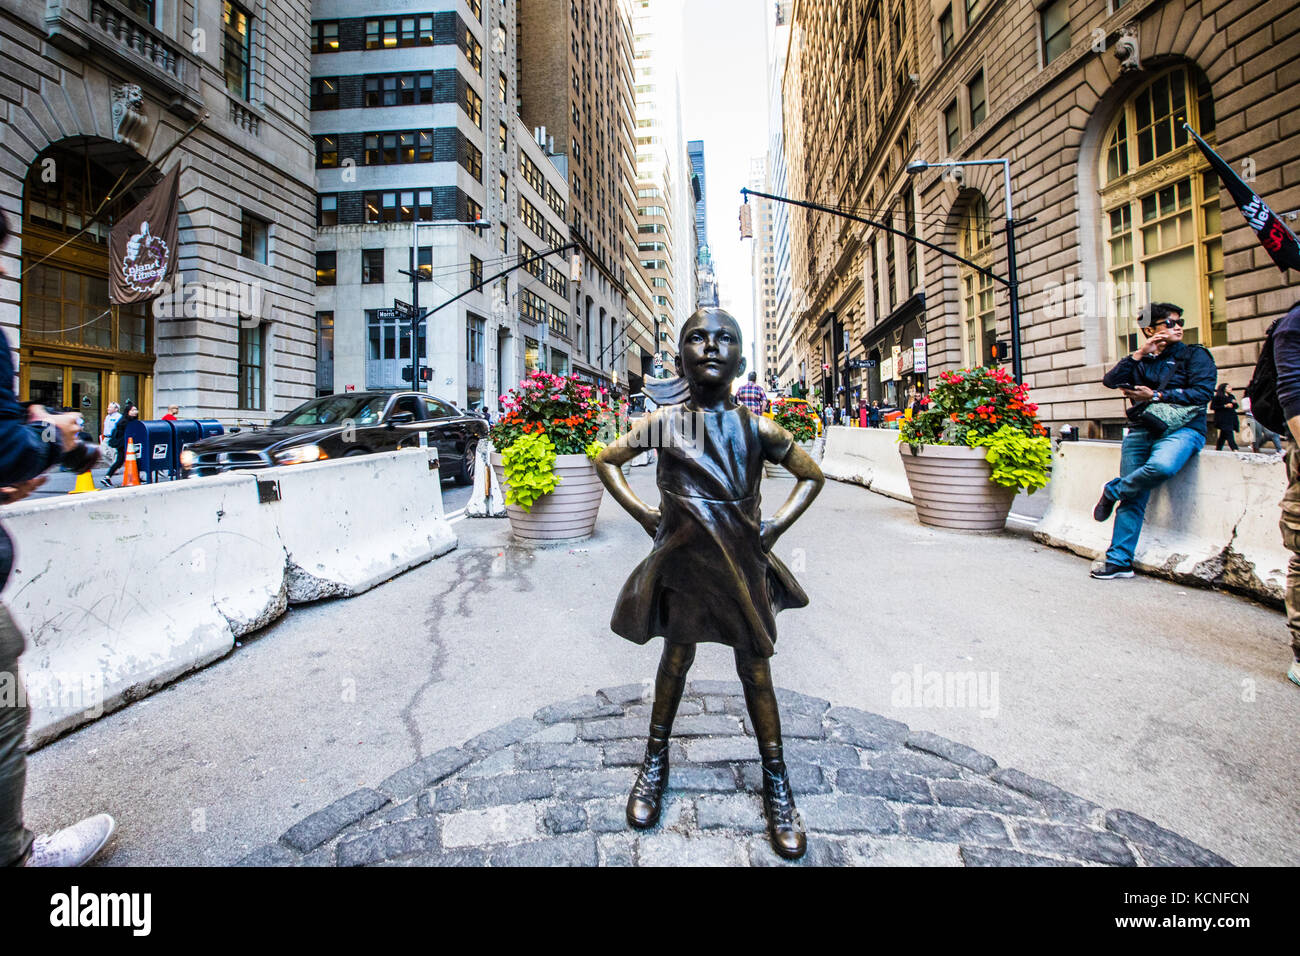 Fearless Girl, bronze sculpture by Kristen Visbal, downtown Manhattan, New York City - Stock Image